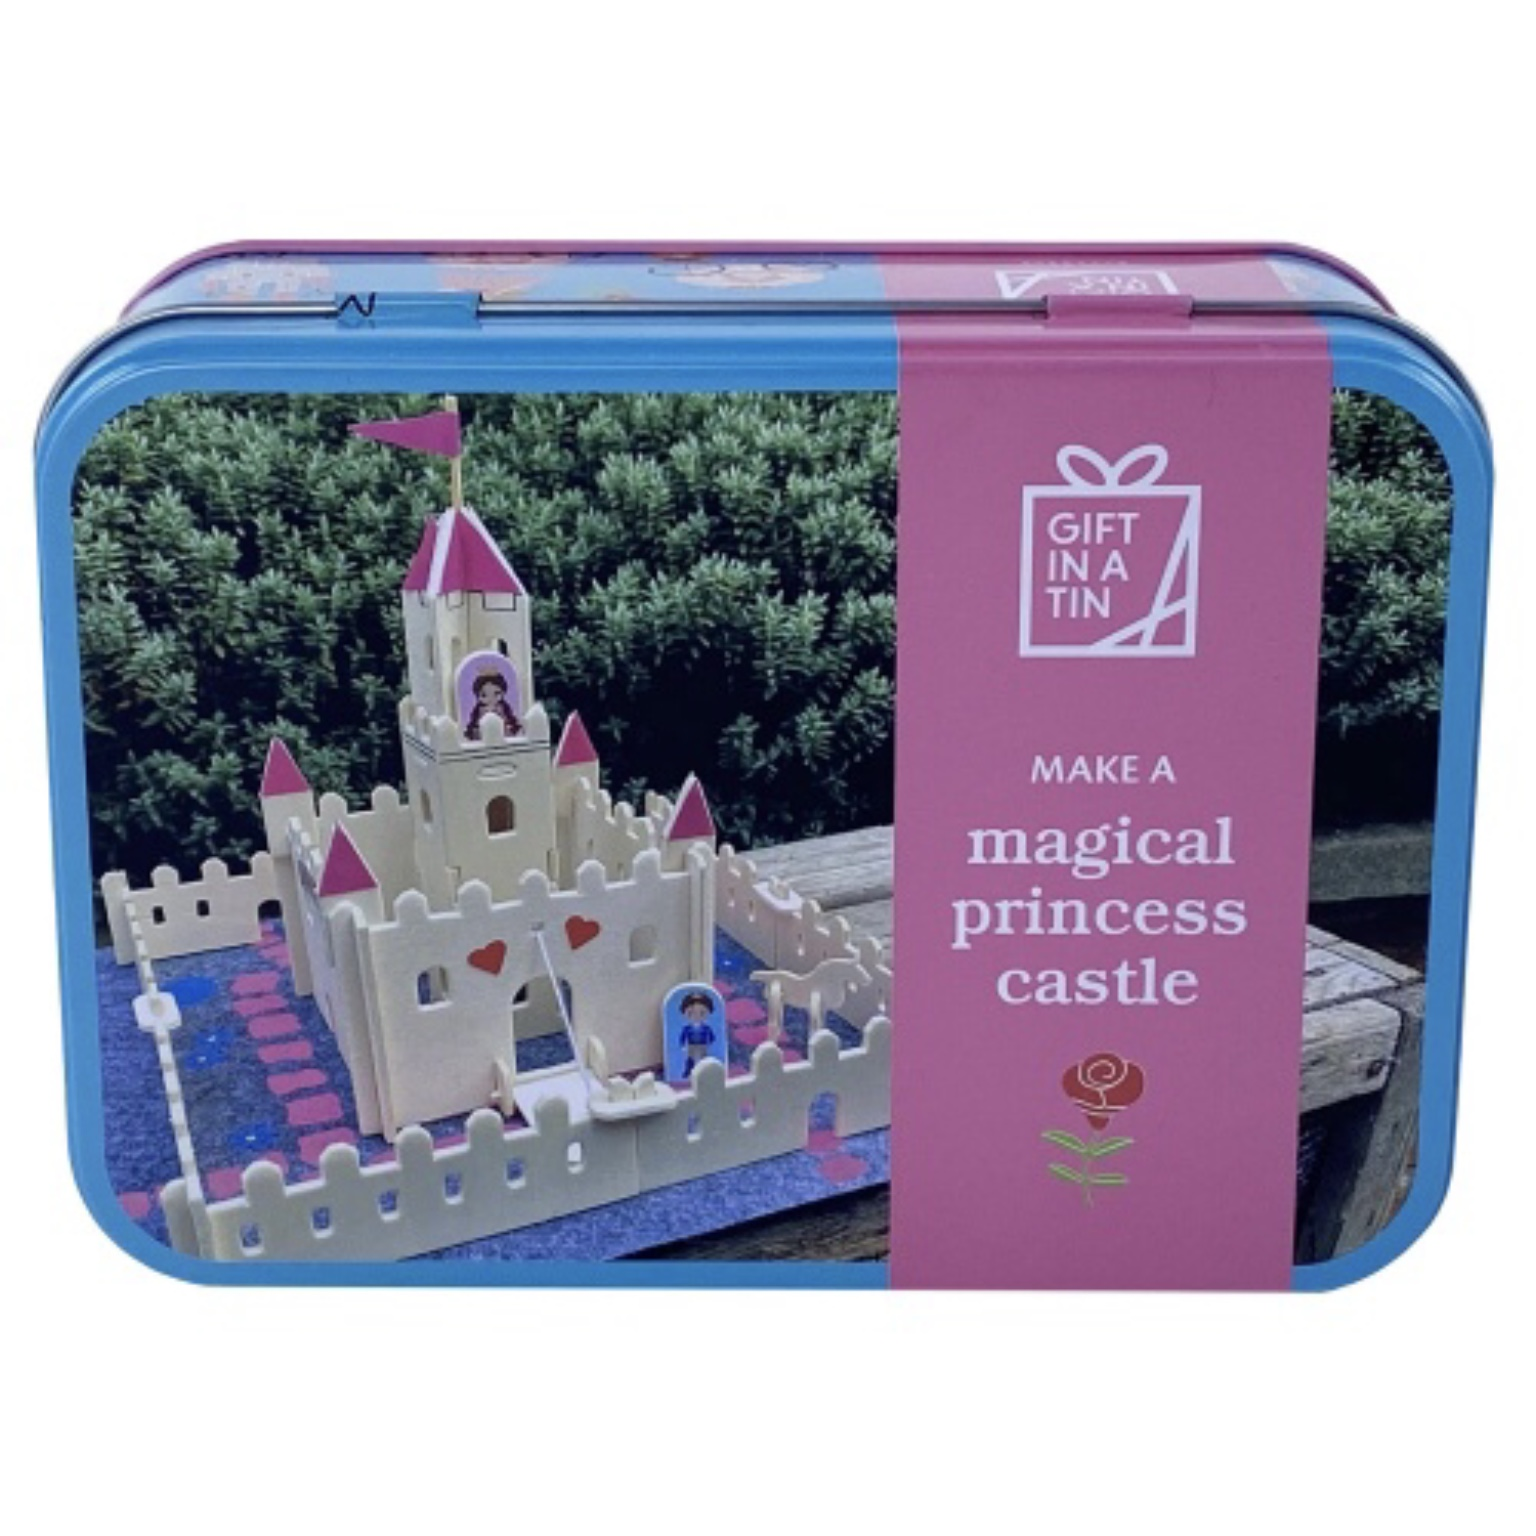 'Magical Princess Castle' Gift in a Tin